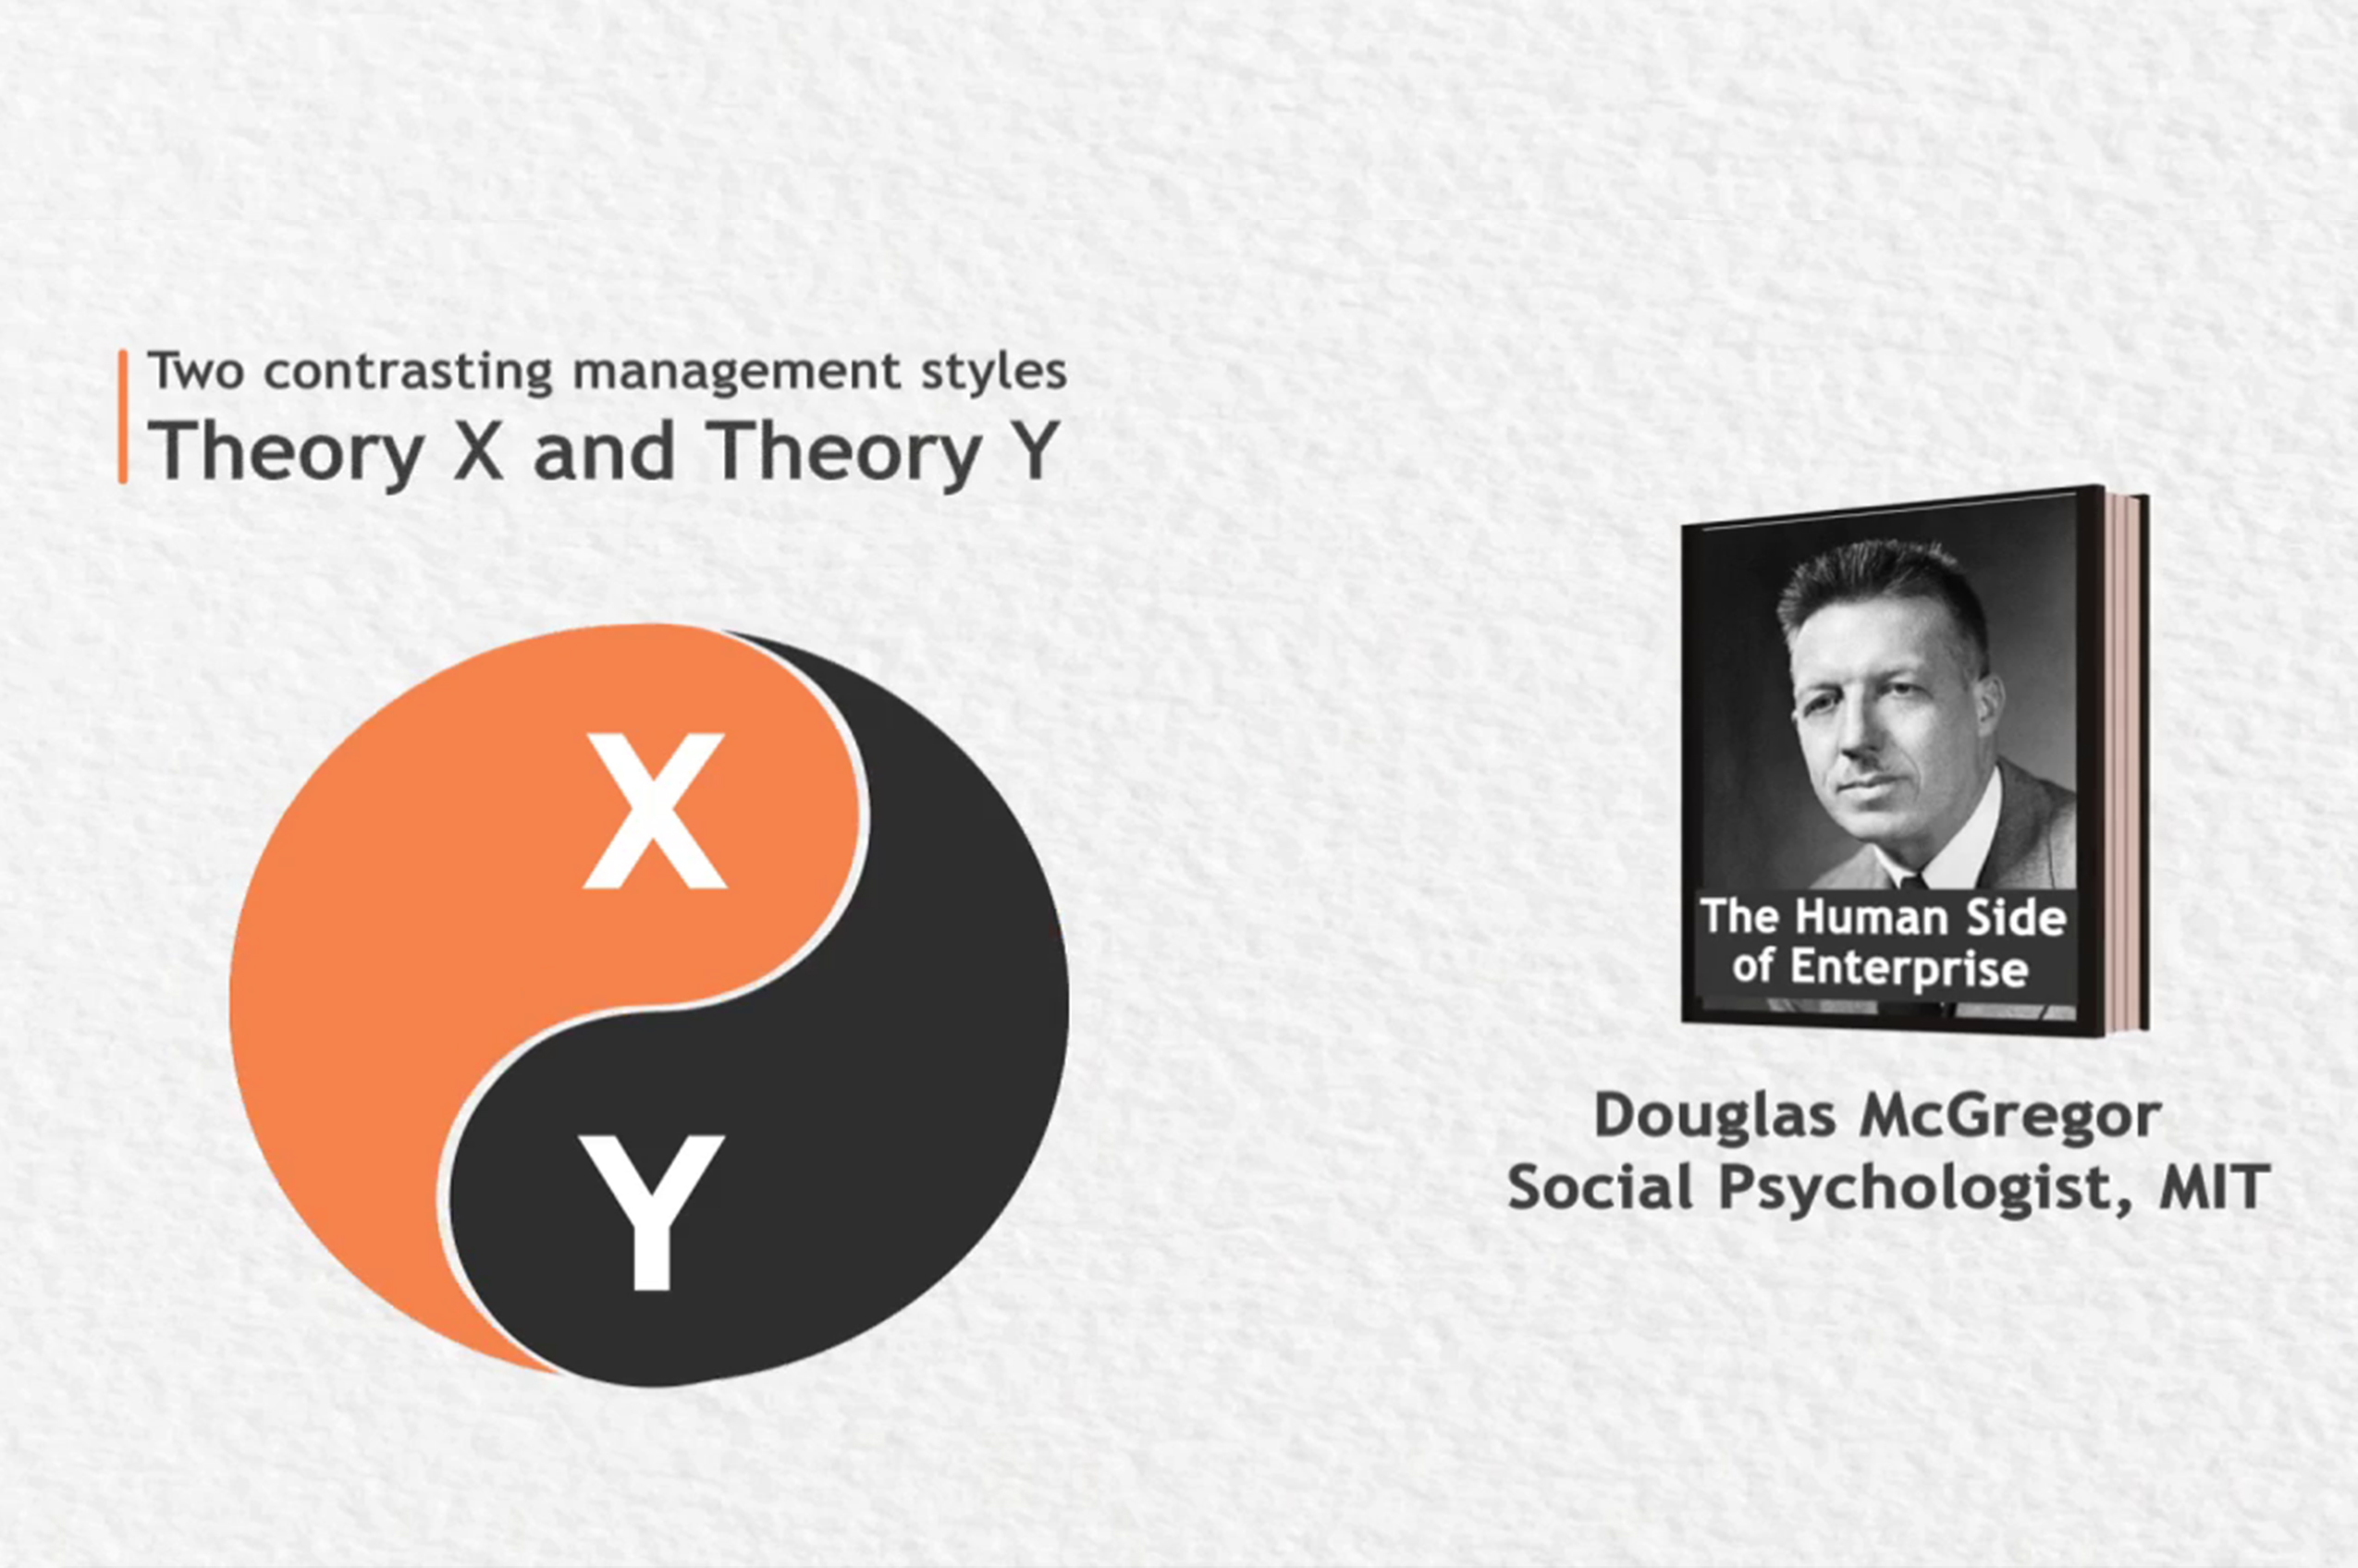 Motivating People - Theory X vs Theory Y